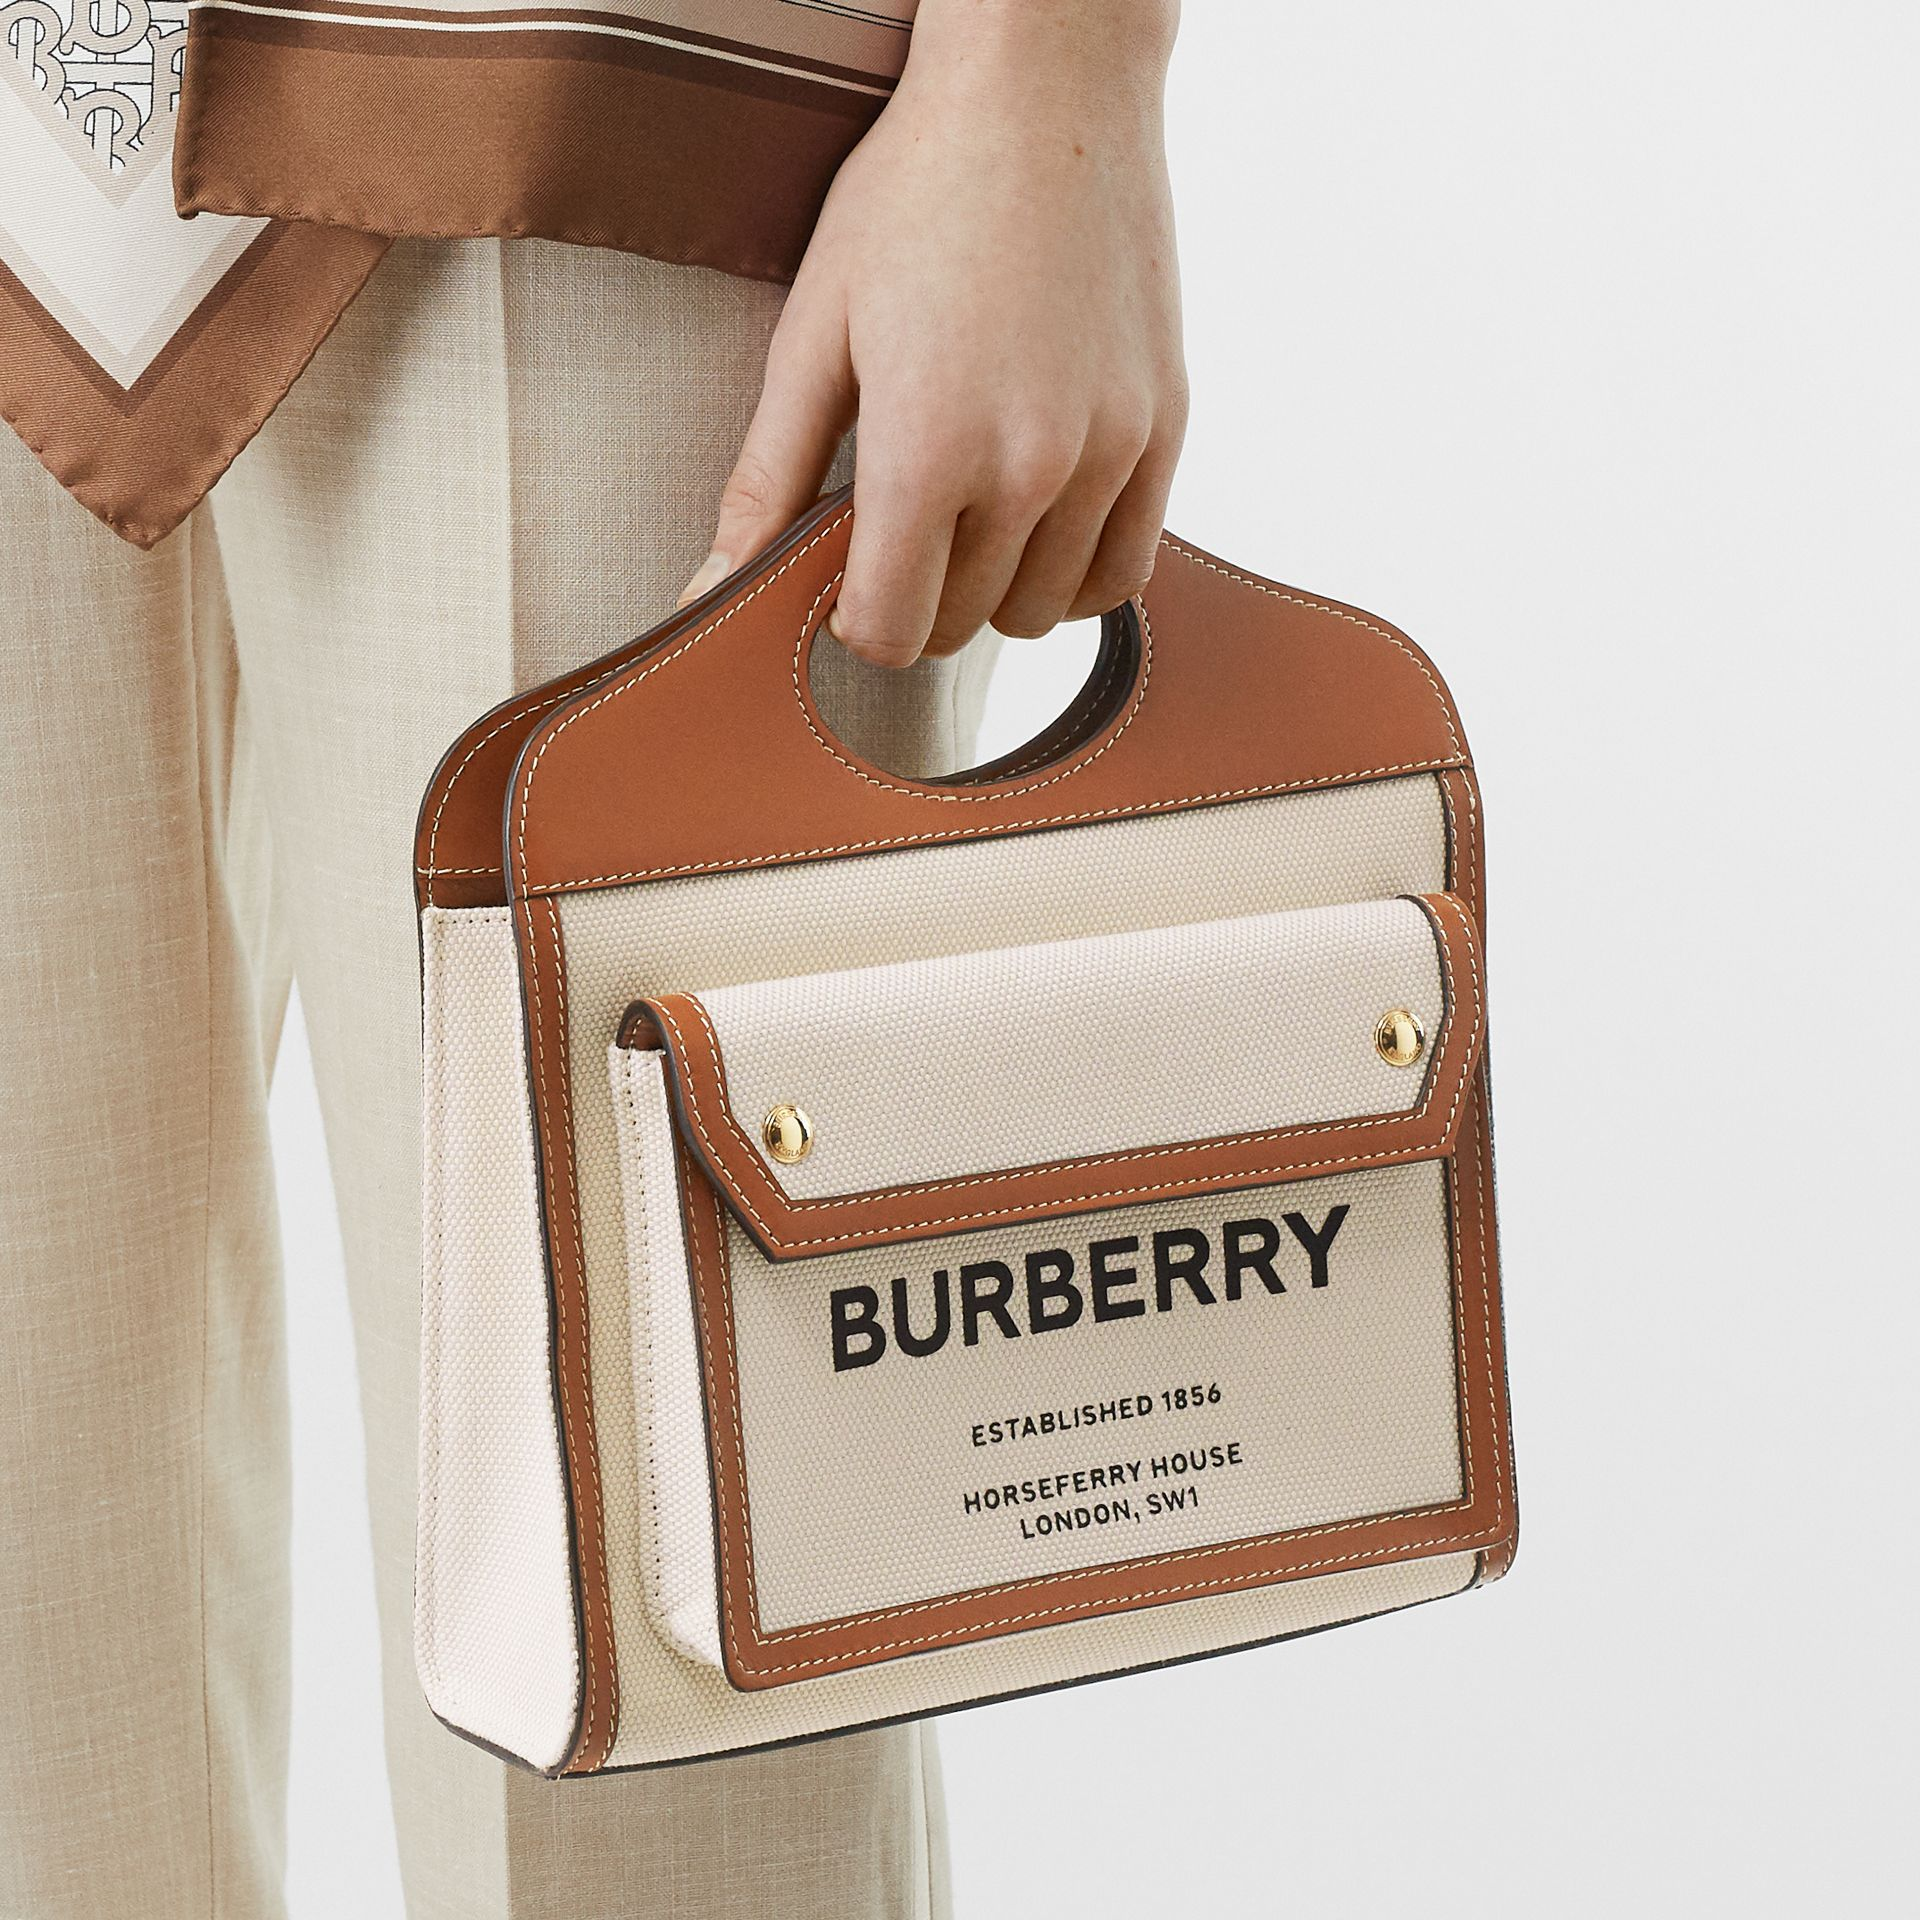 Borsa Pocket mini bicolore in tela e pelle (Naturale/marrone Malto) - Donna | Burberry - immagine della galleria 2